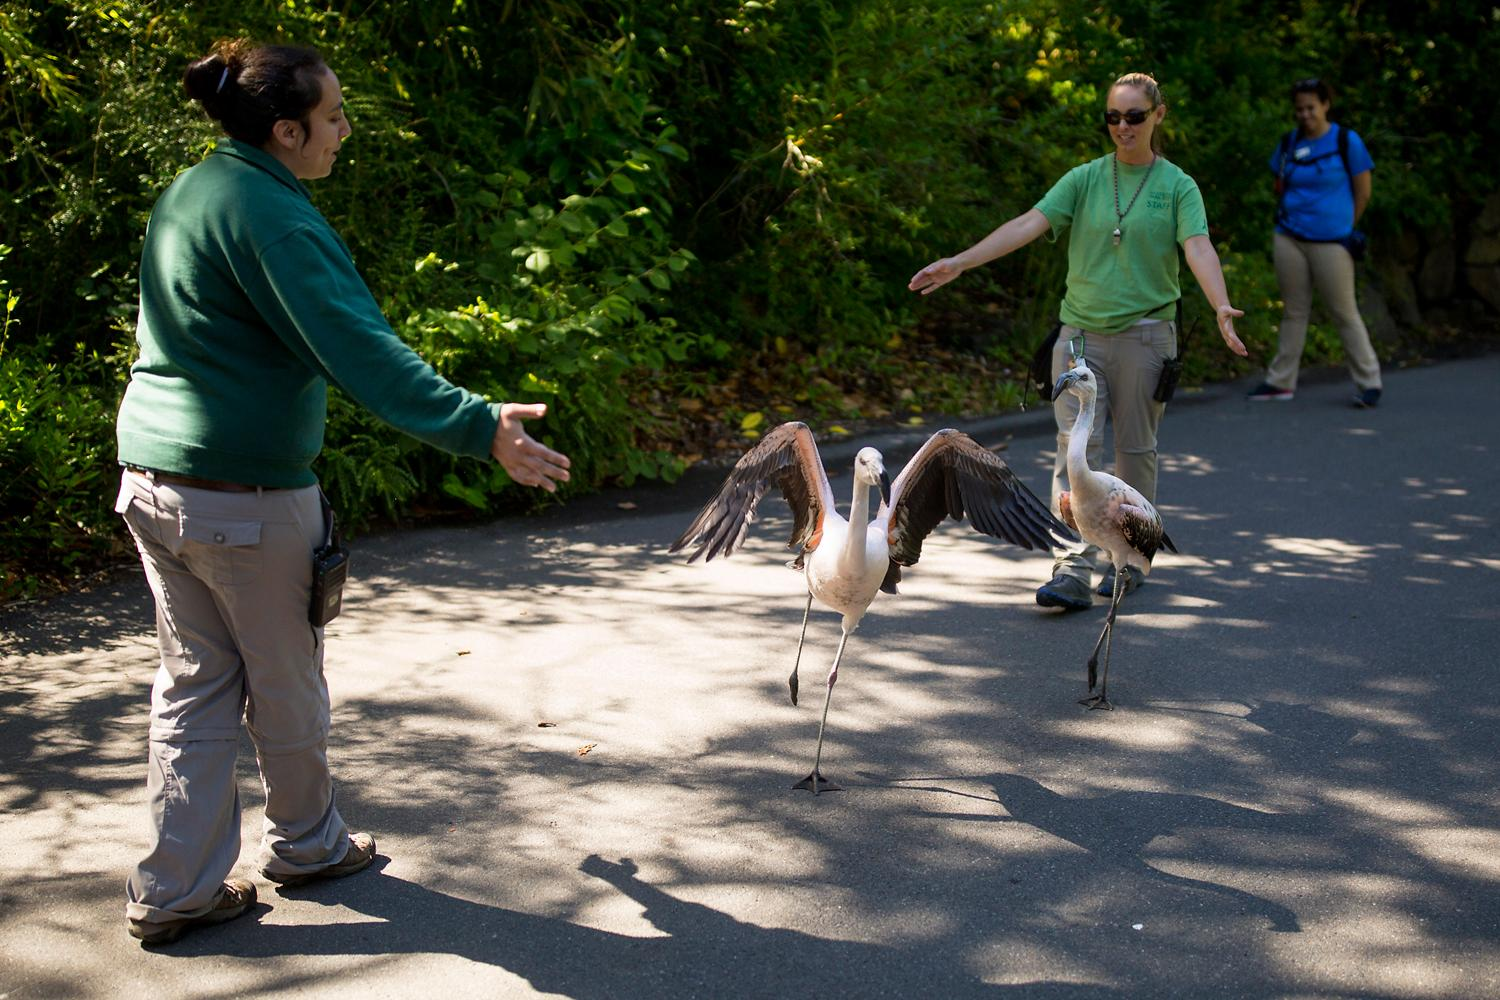 The Woodland Park Zoo's Chilean flamingos, Paco and Pluma, take a walk through the zoo on Friday, June 30, 2017. (Sy Bean / Seattle Refined)